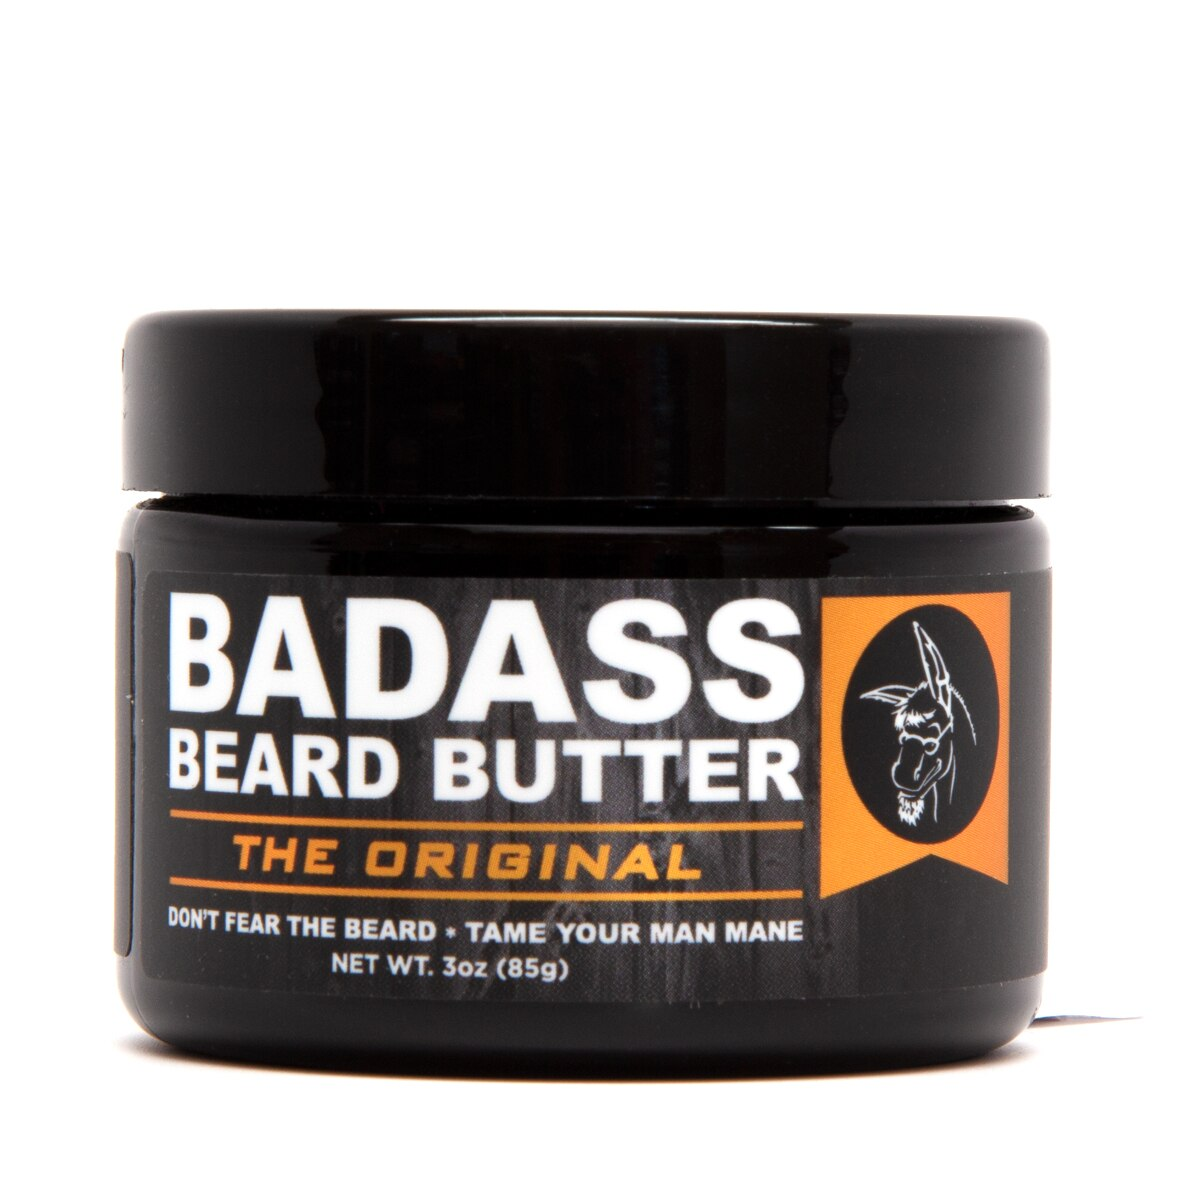 Badass Beard Butter 4 Pack